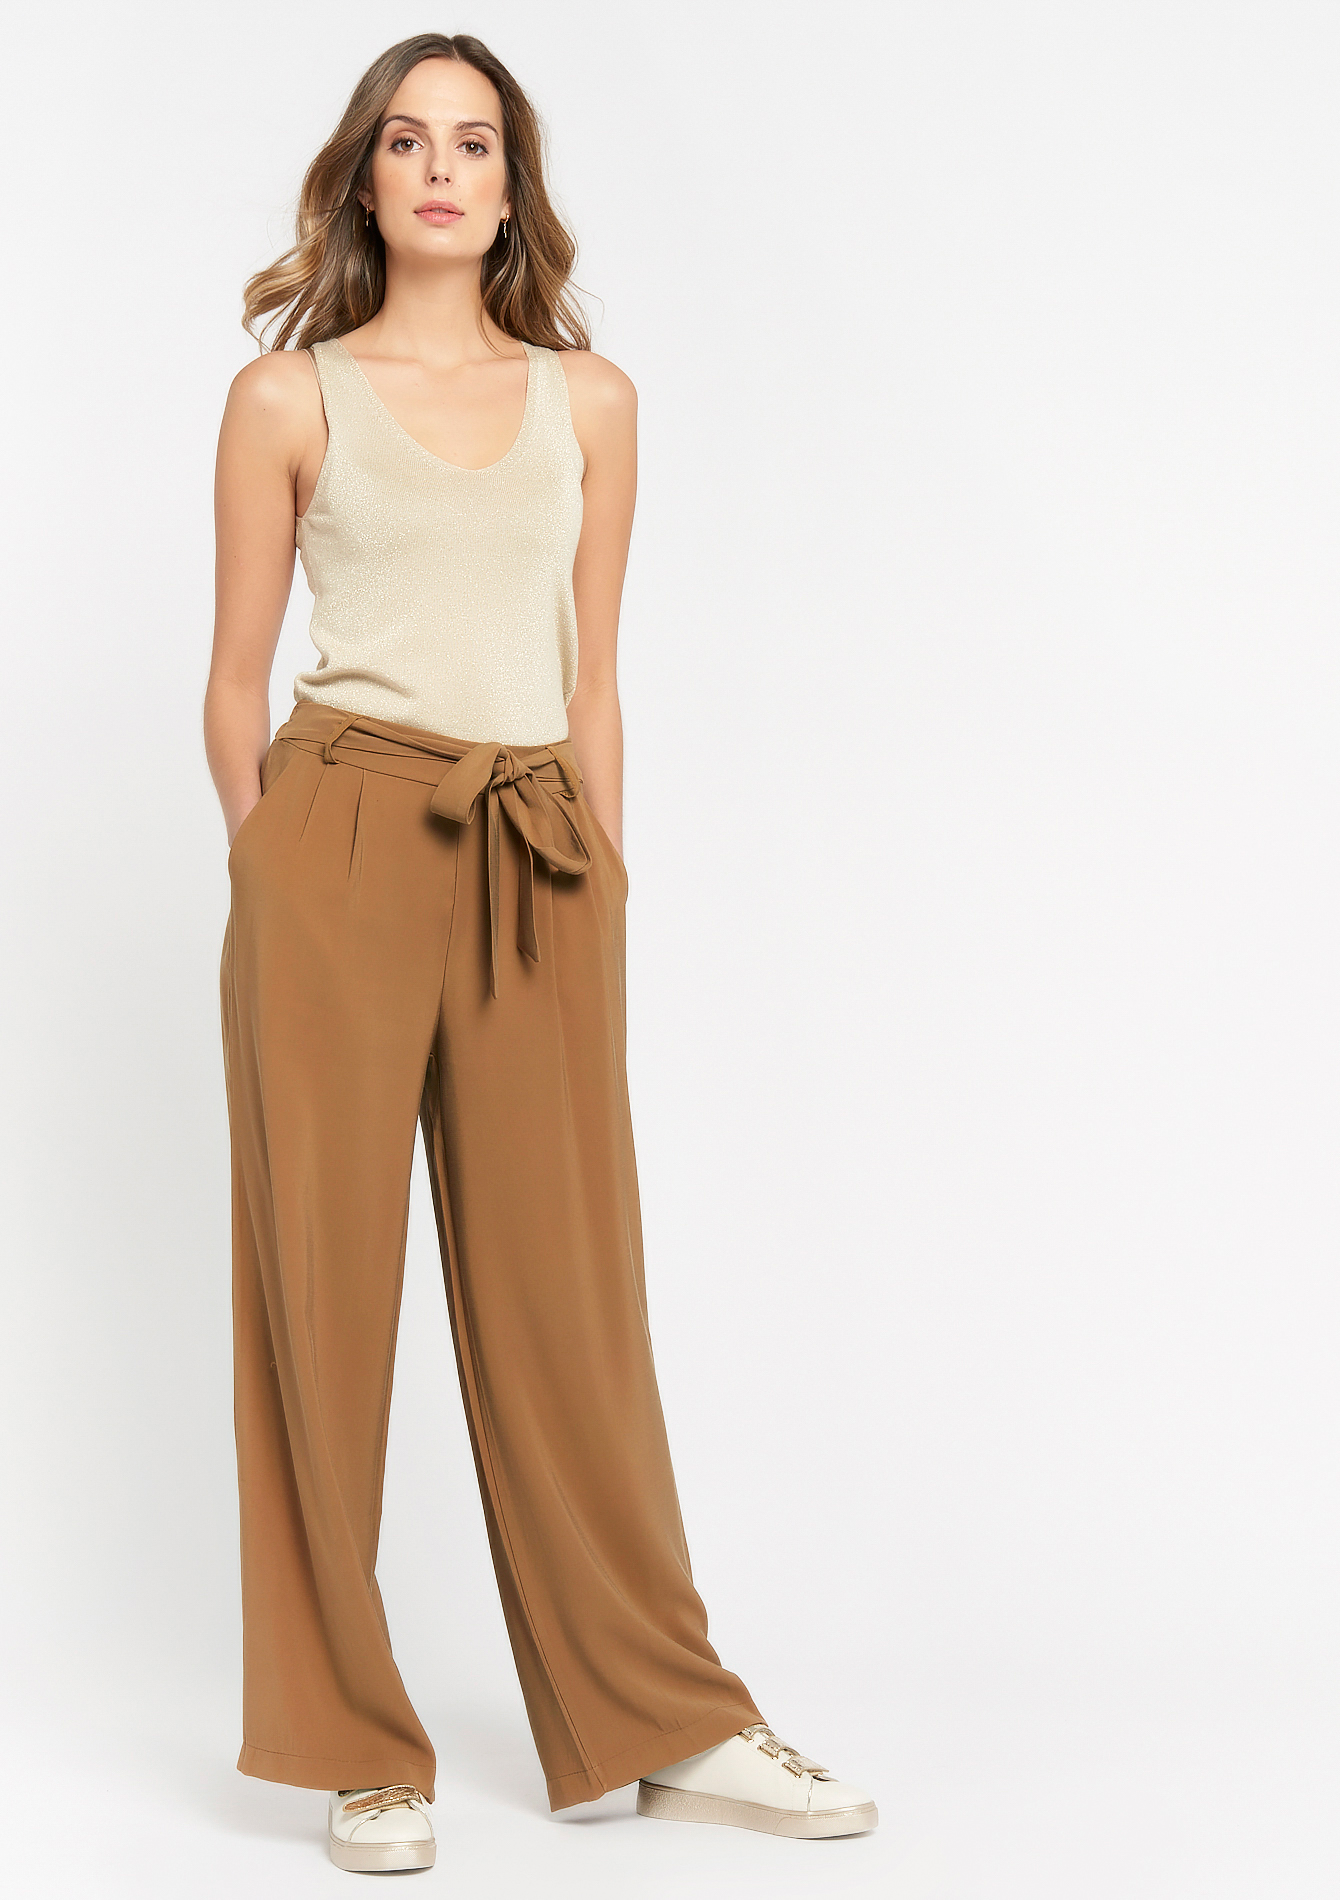 Losse broek met ceintuur met strik - TOBACCO BROWN - 06600454_1956